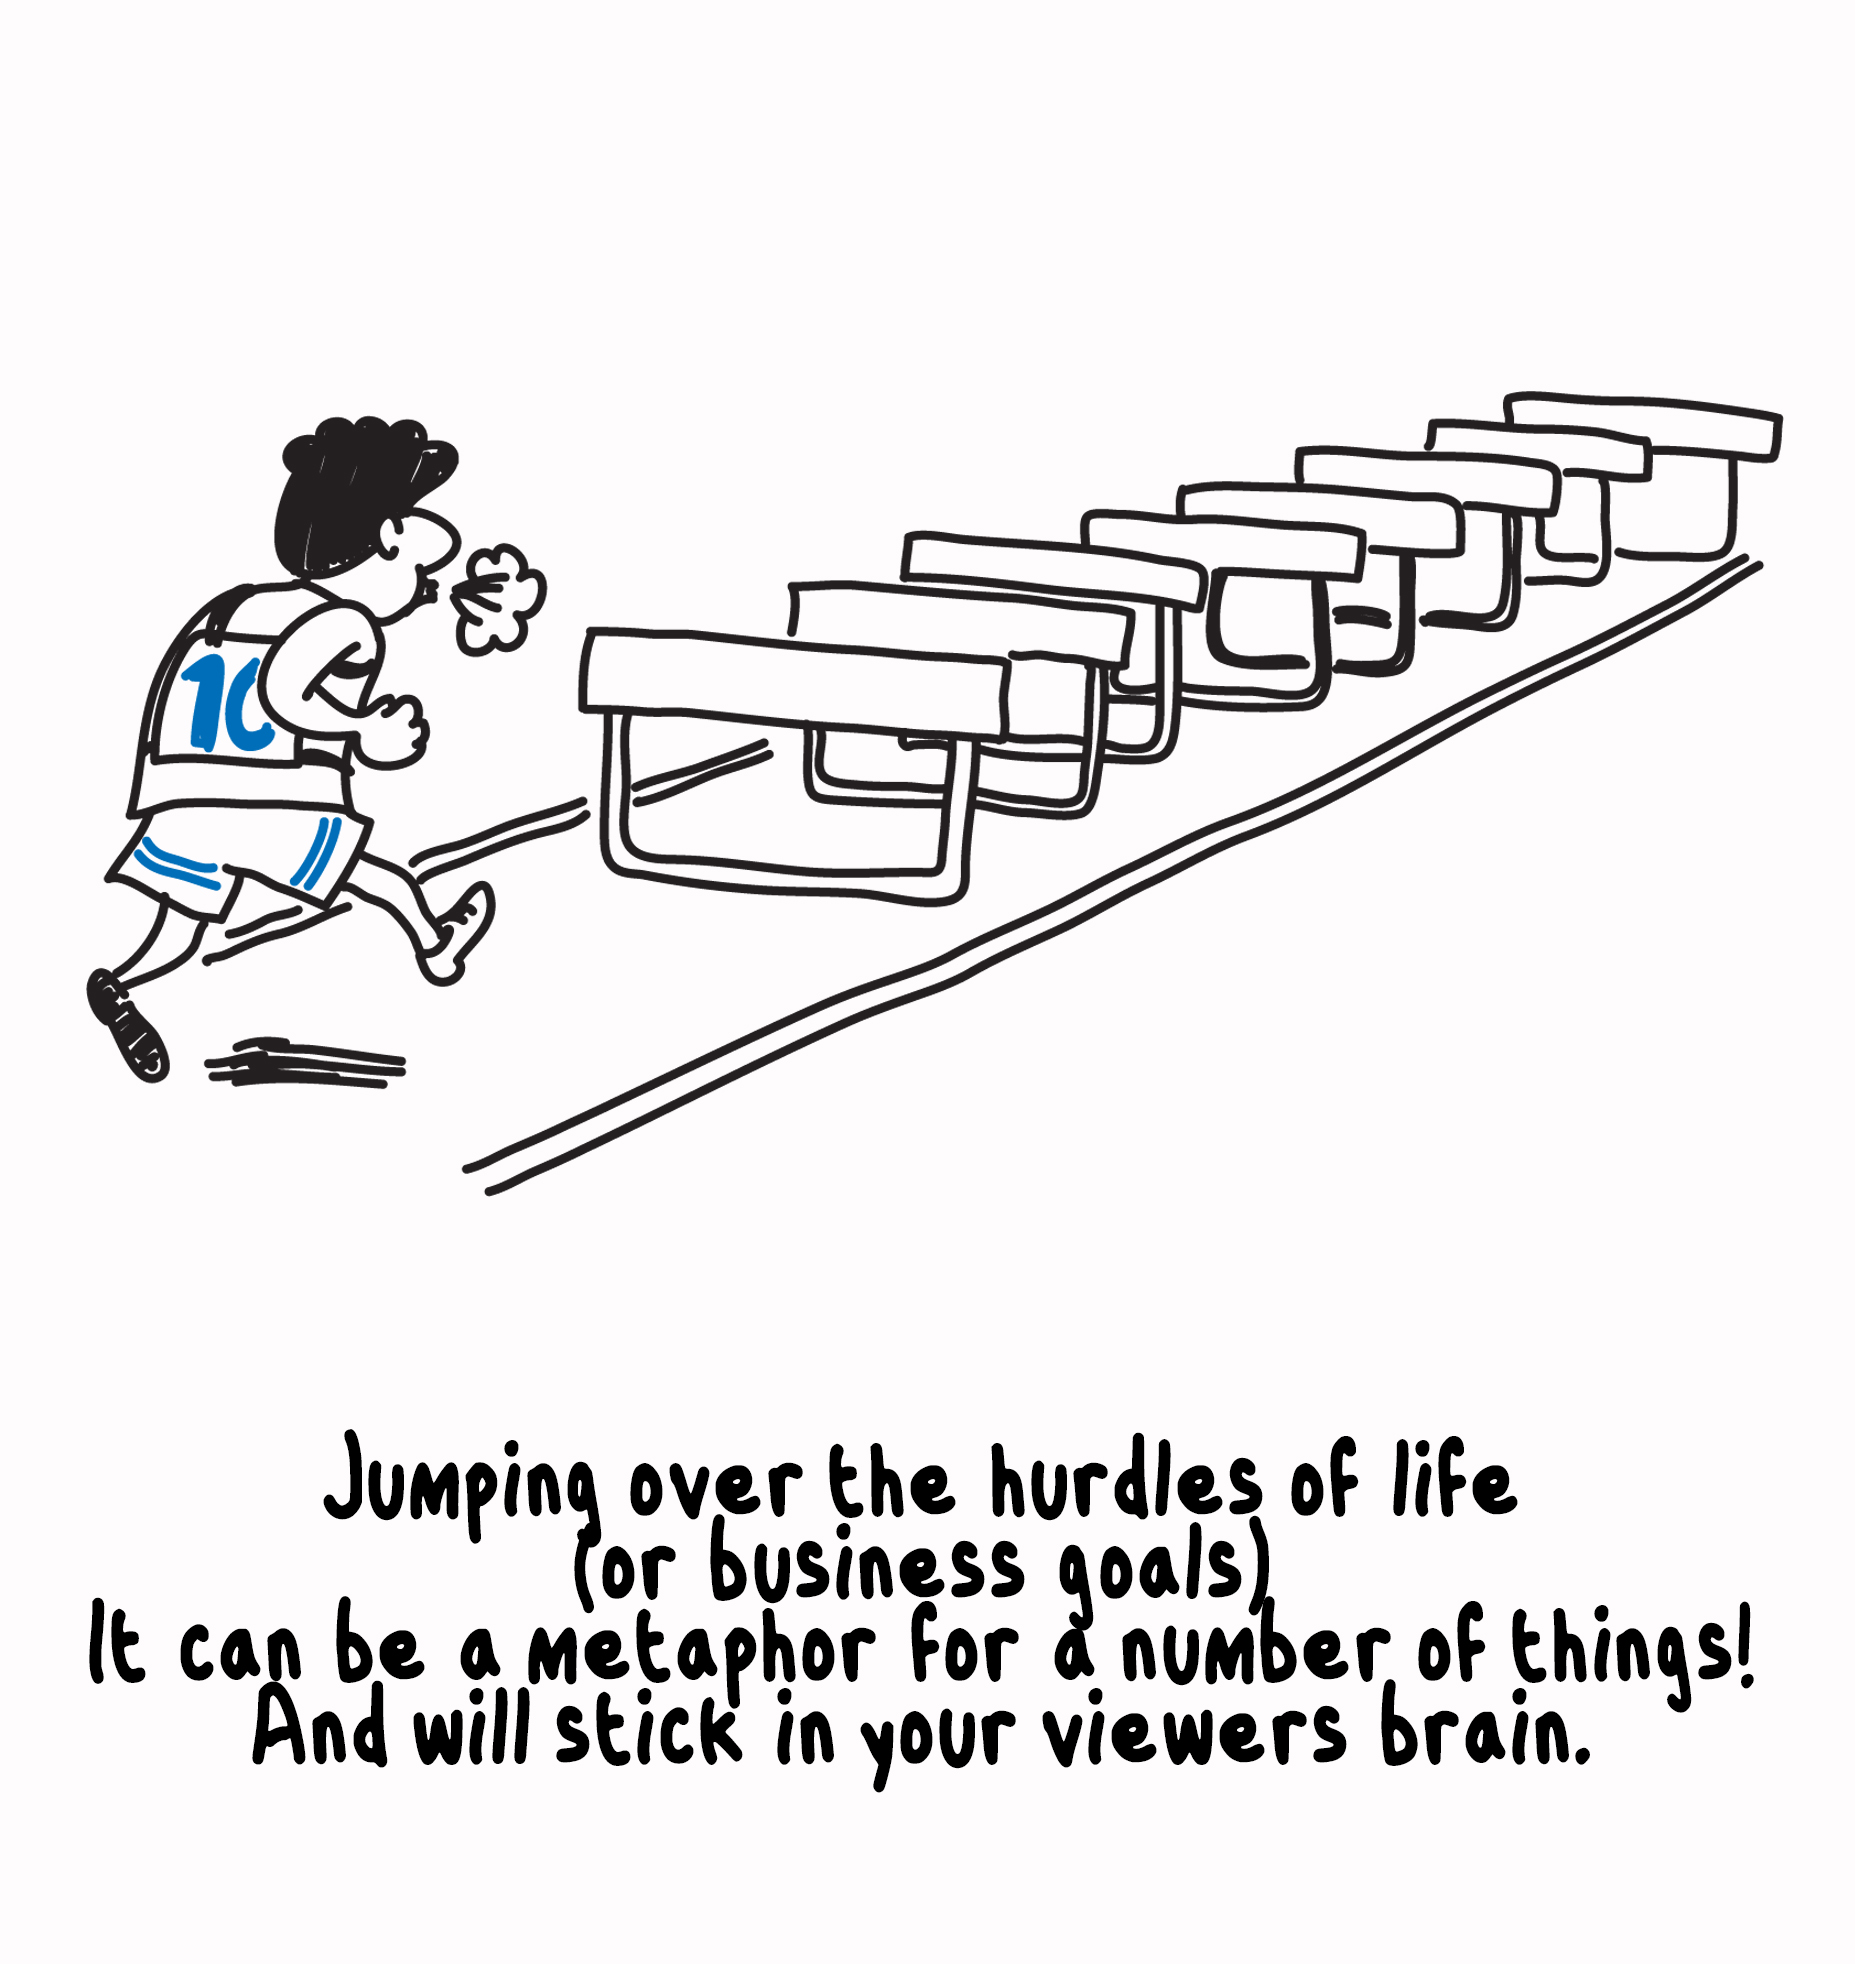 A visual metaphor for jumping over hurdles